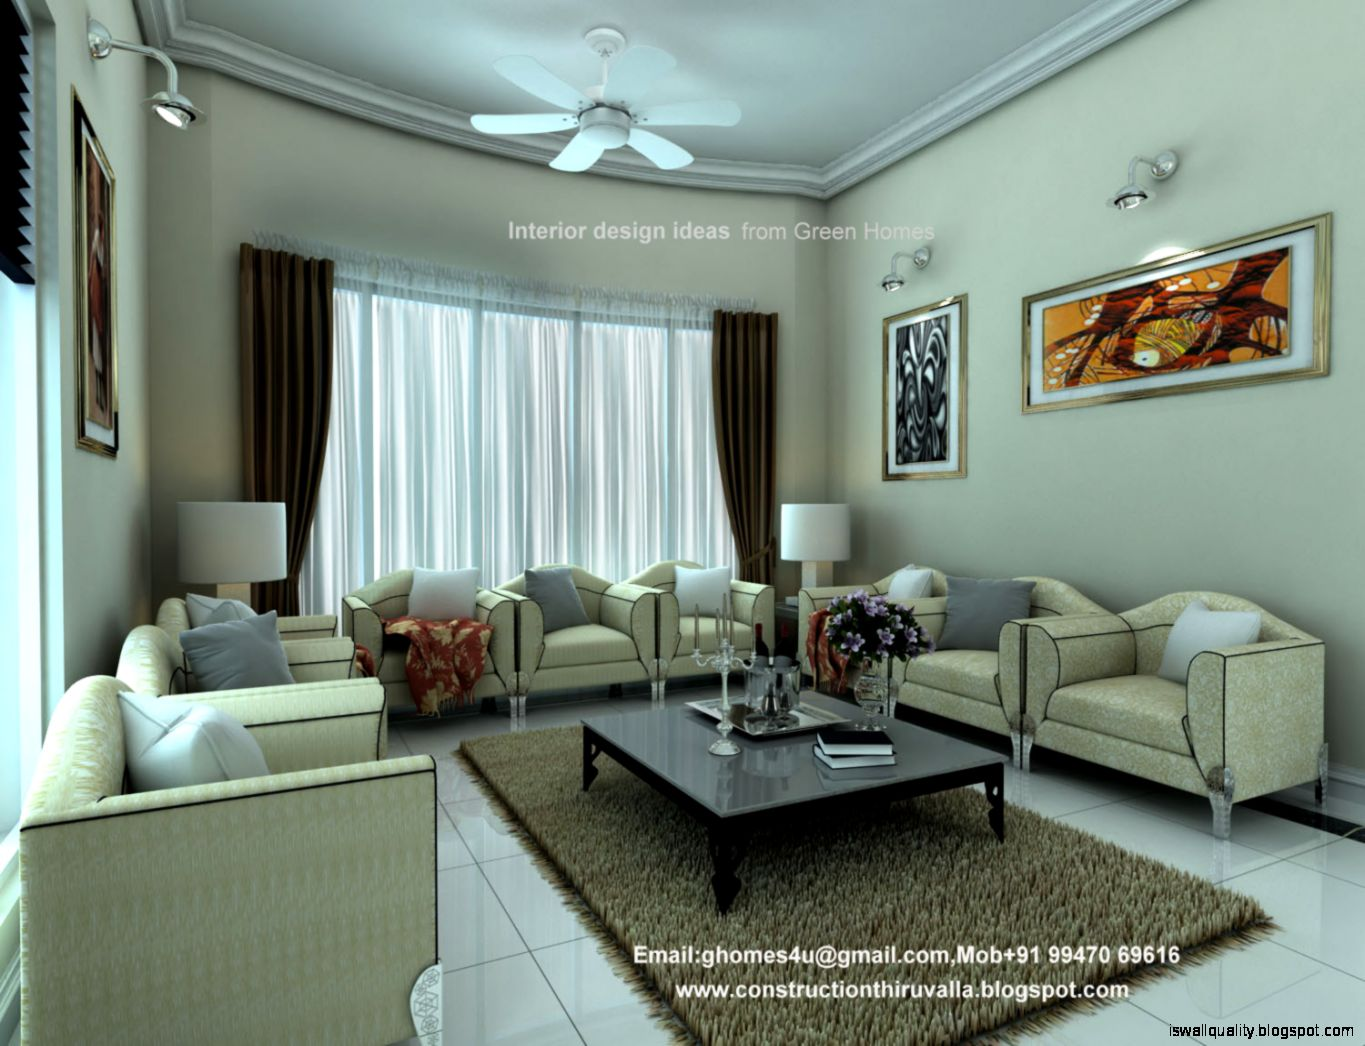 Interior Design Living Room Traditional 1080p Wallpapers Quality